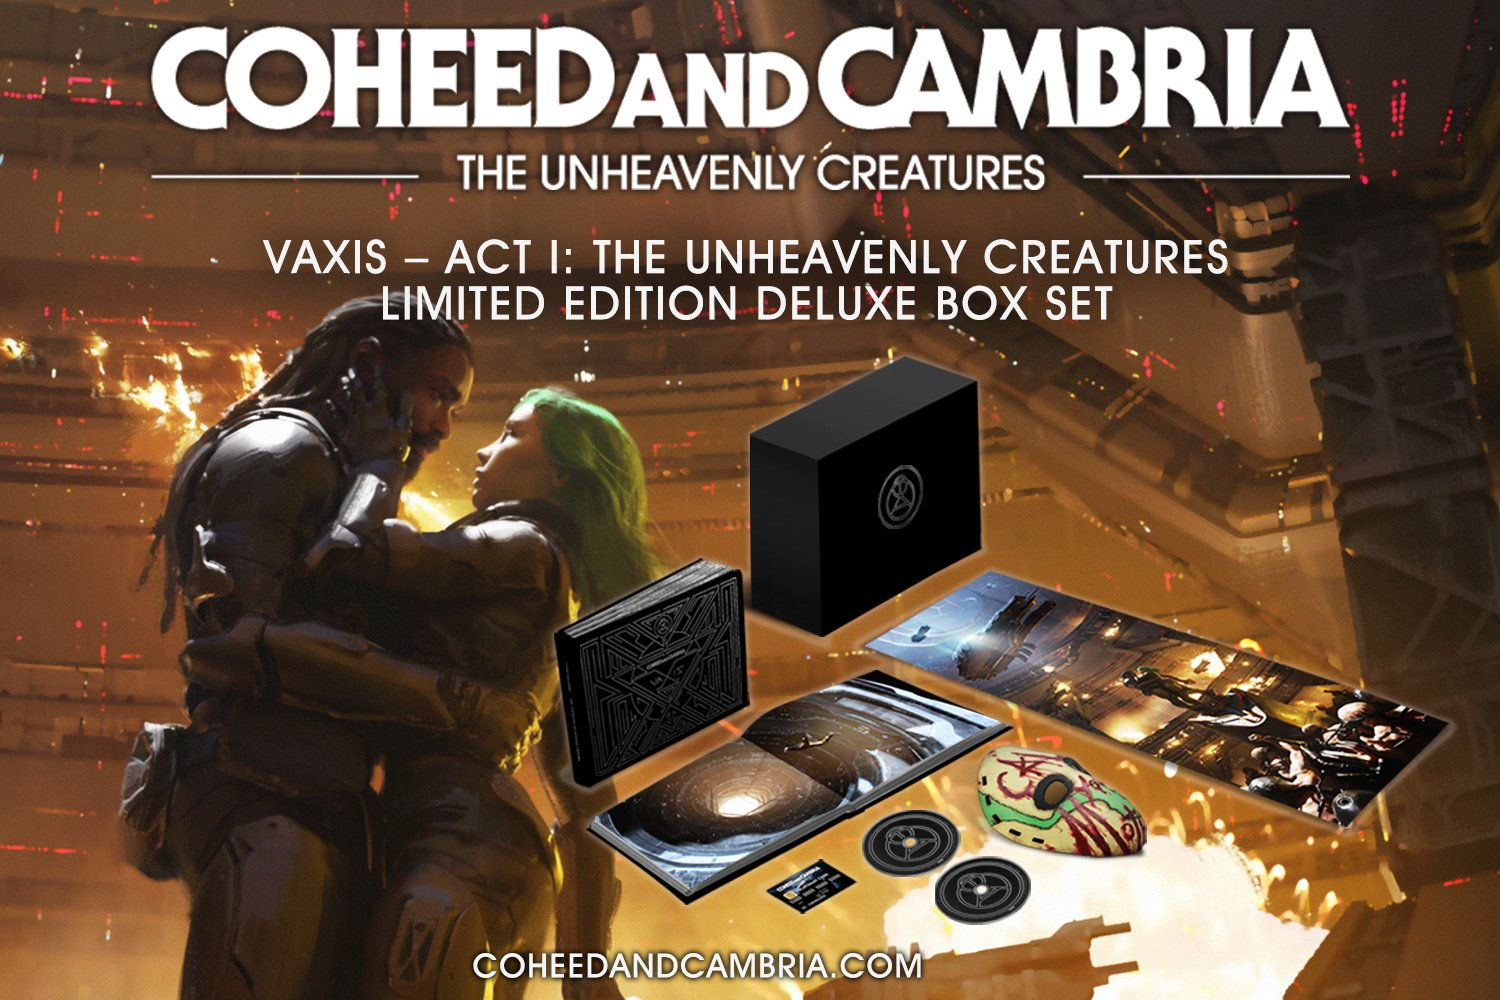 VAXIS - ACT I: The Unheavenly Creatures Limited Box Set is here! Pre-order now! https://t.co/hnGsv0mkwJ https://t.co/KNTTp8b8JF